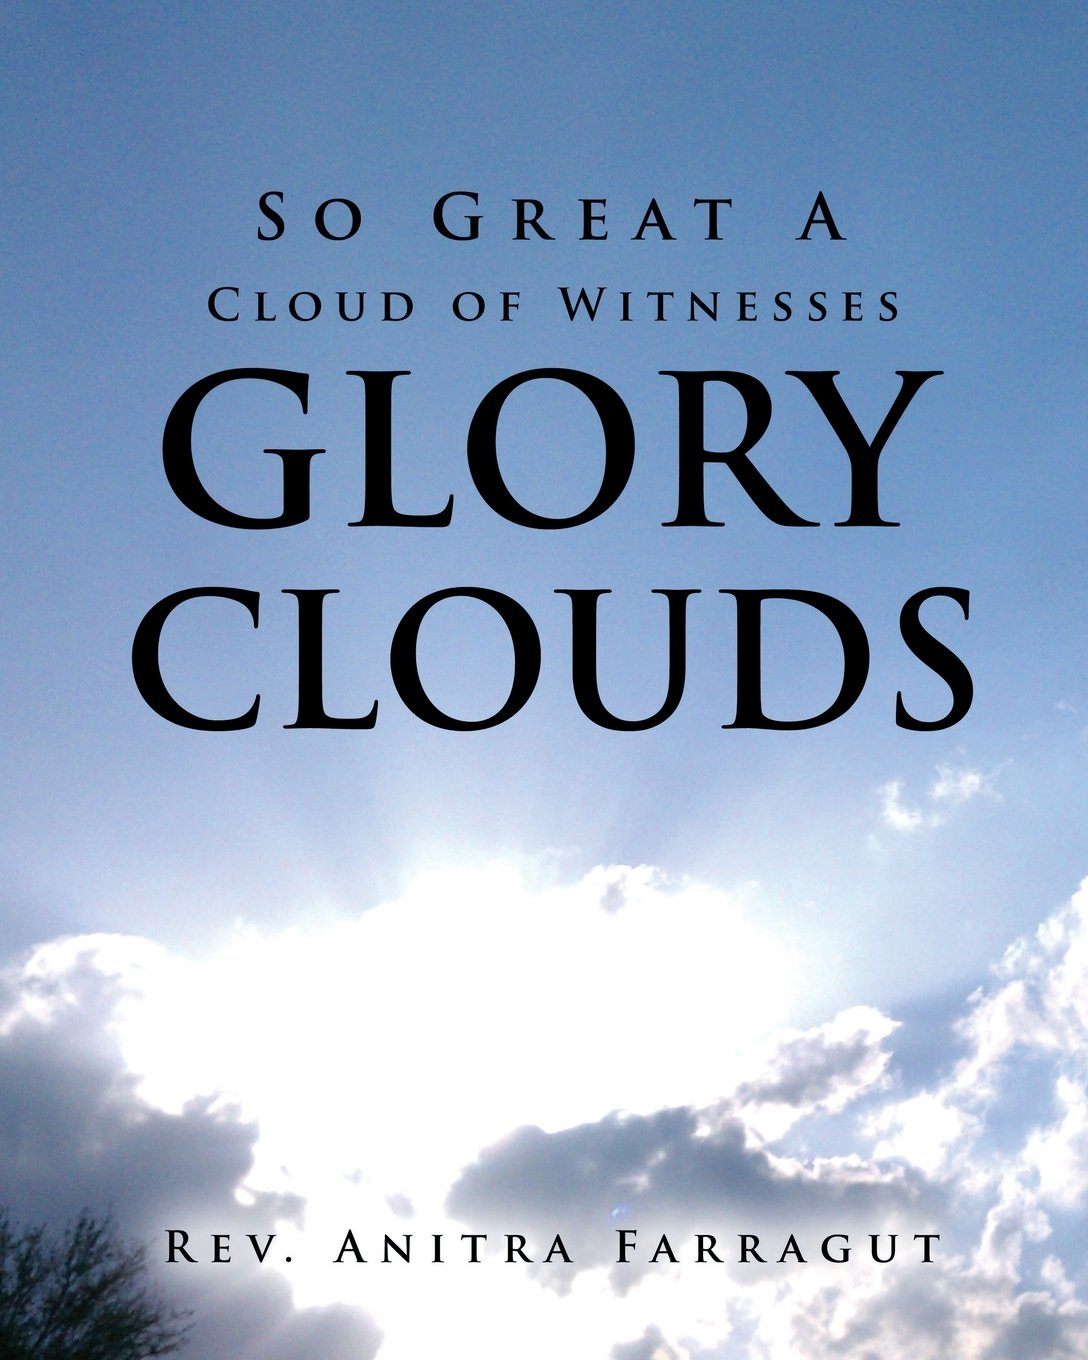 Read Online So Great a Cloud of Witnesses Glory Clouds ePub fb2 book